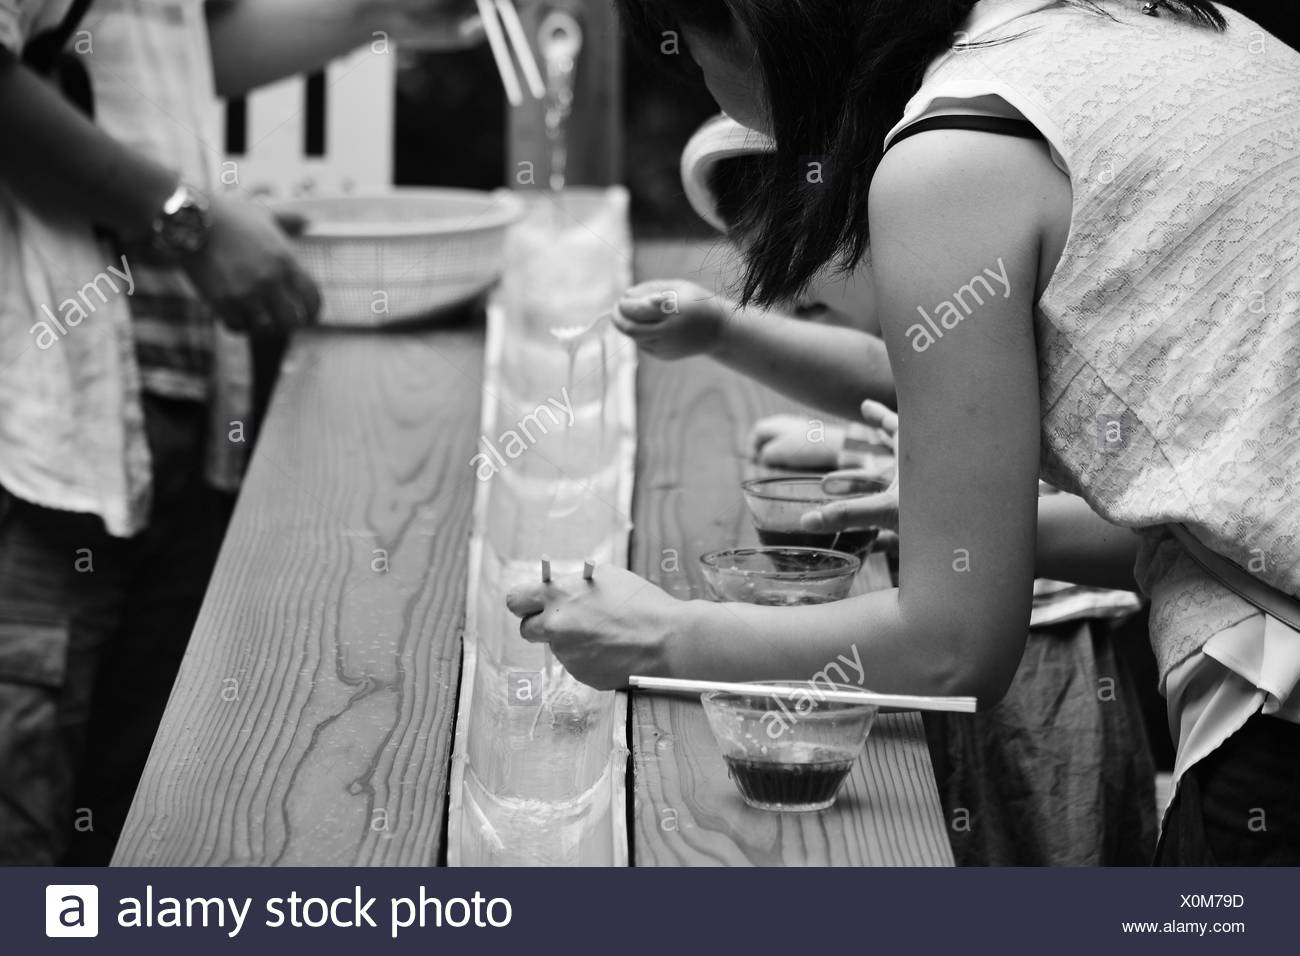 Midsection Of People Having Somen In Restaurant - Stock Image